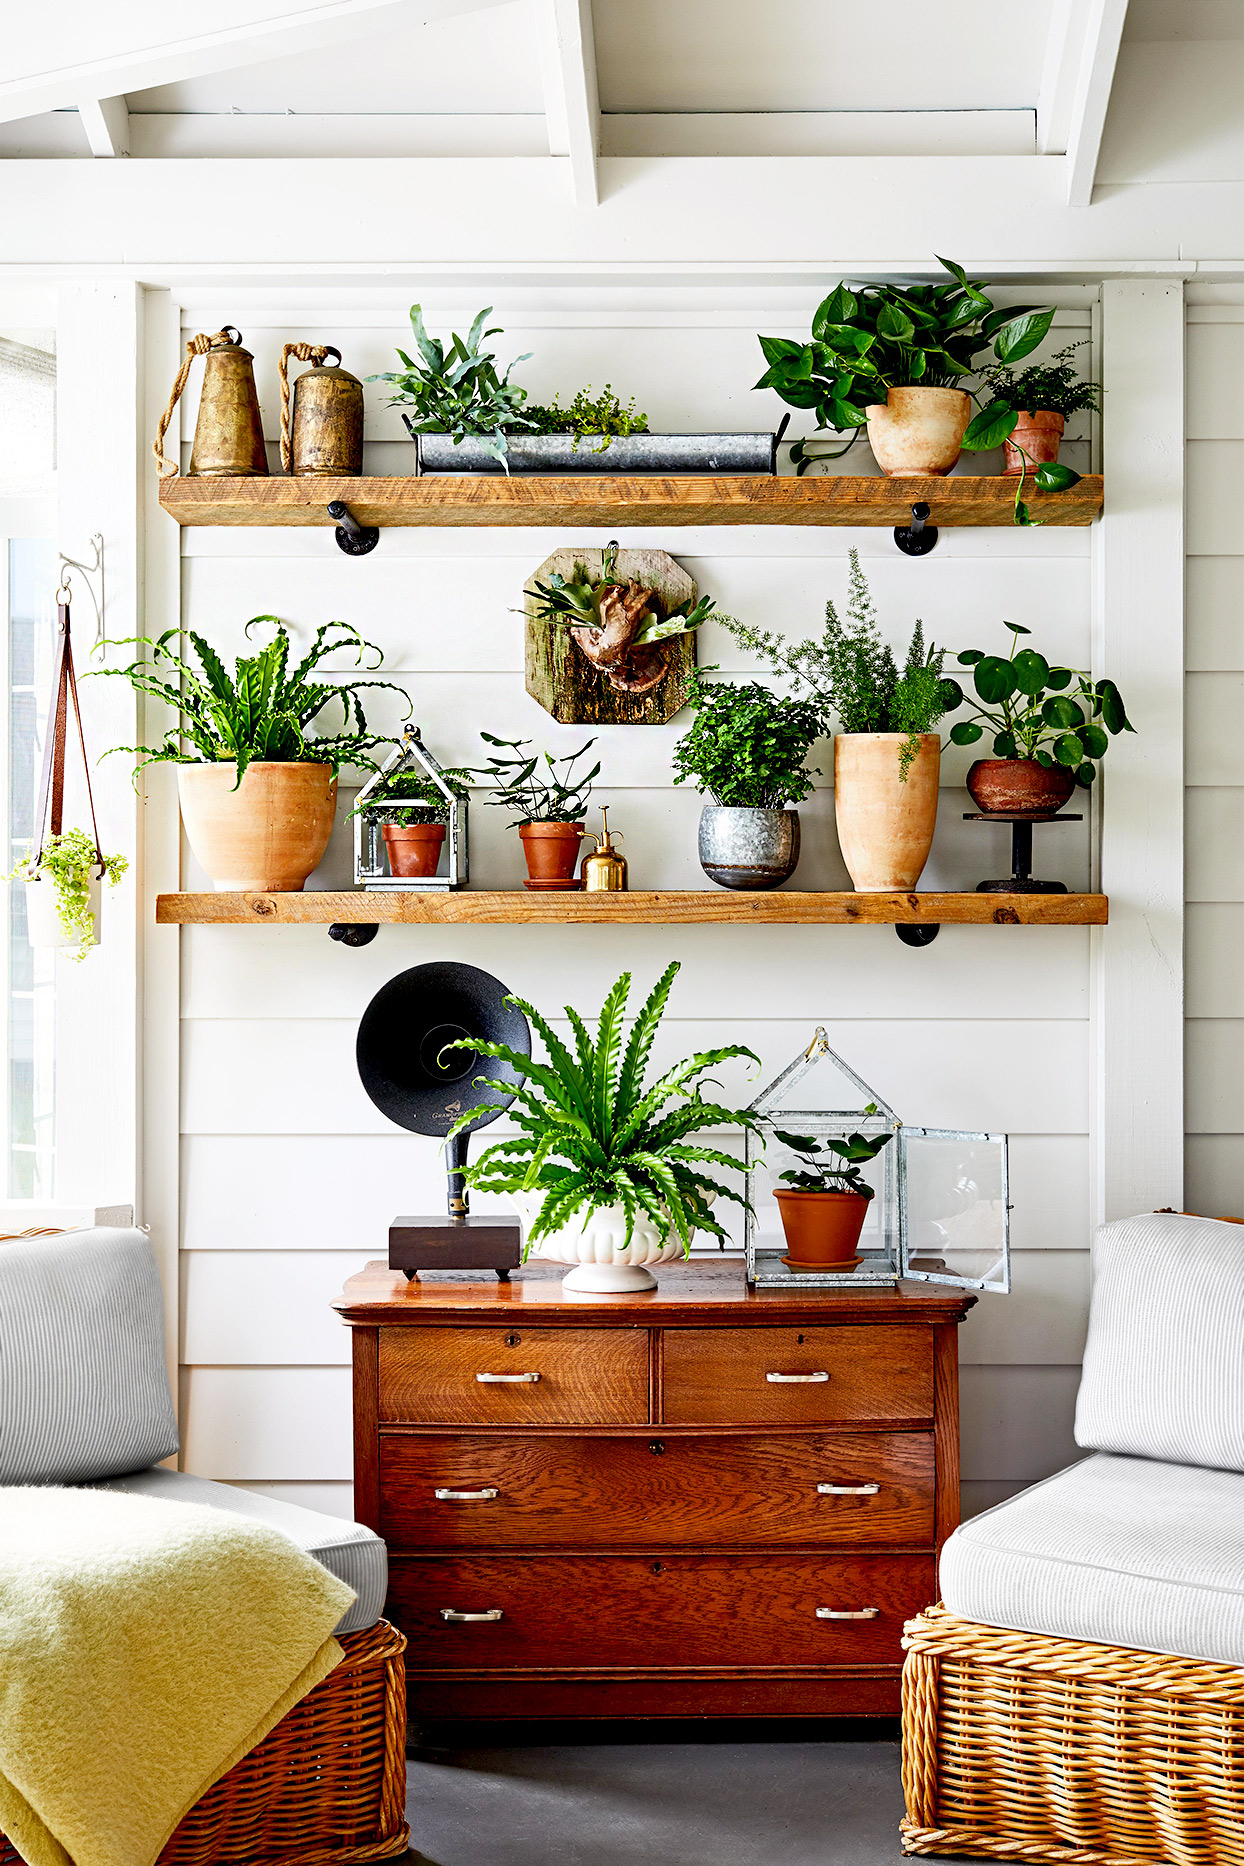 Seating area with shelving for plants